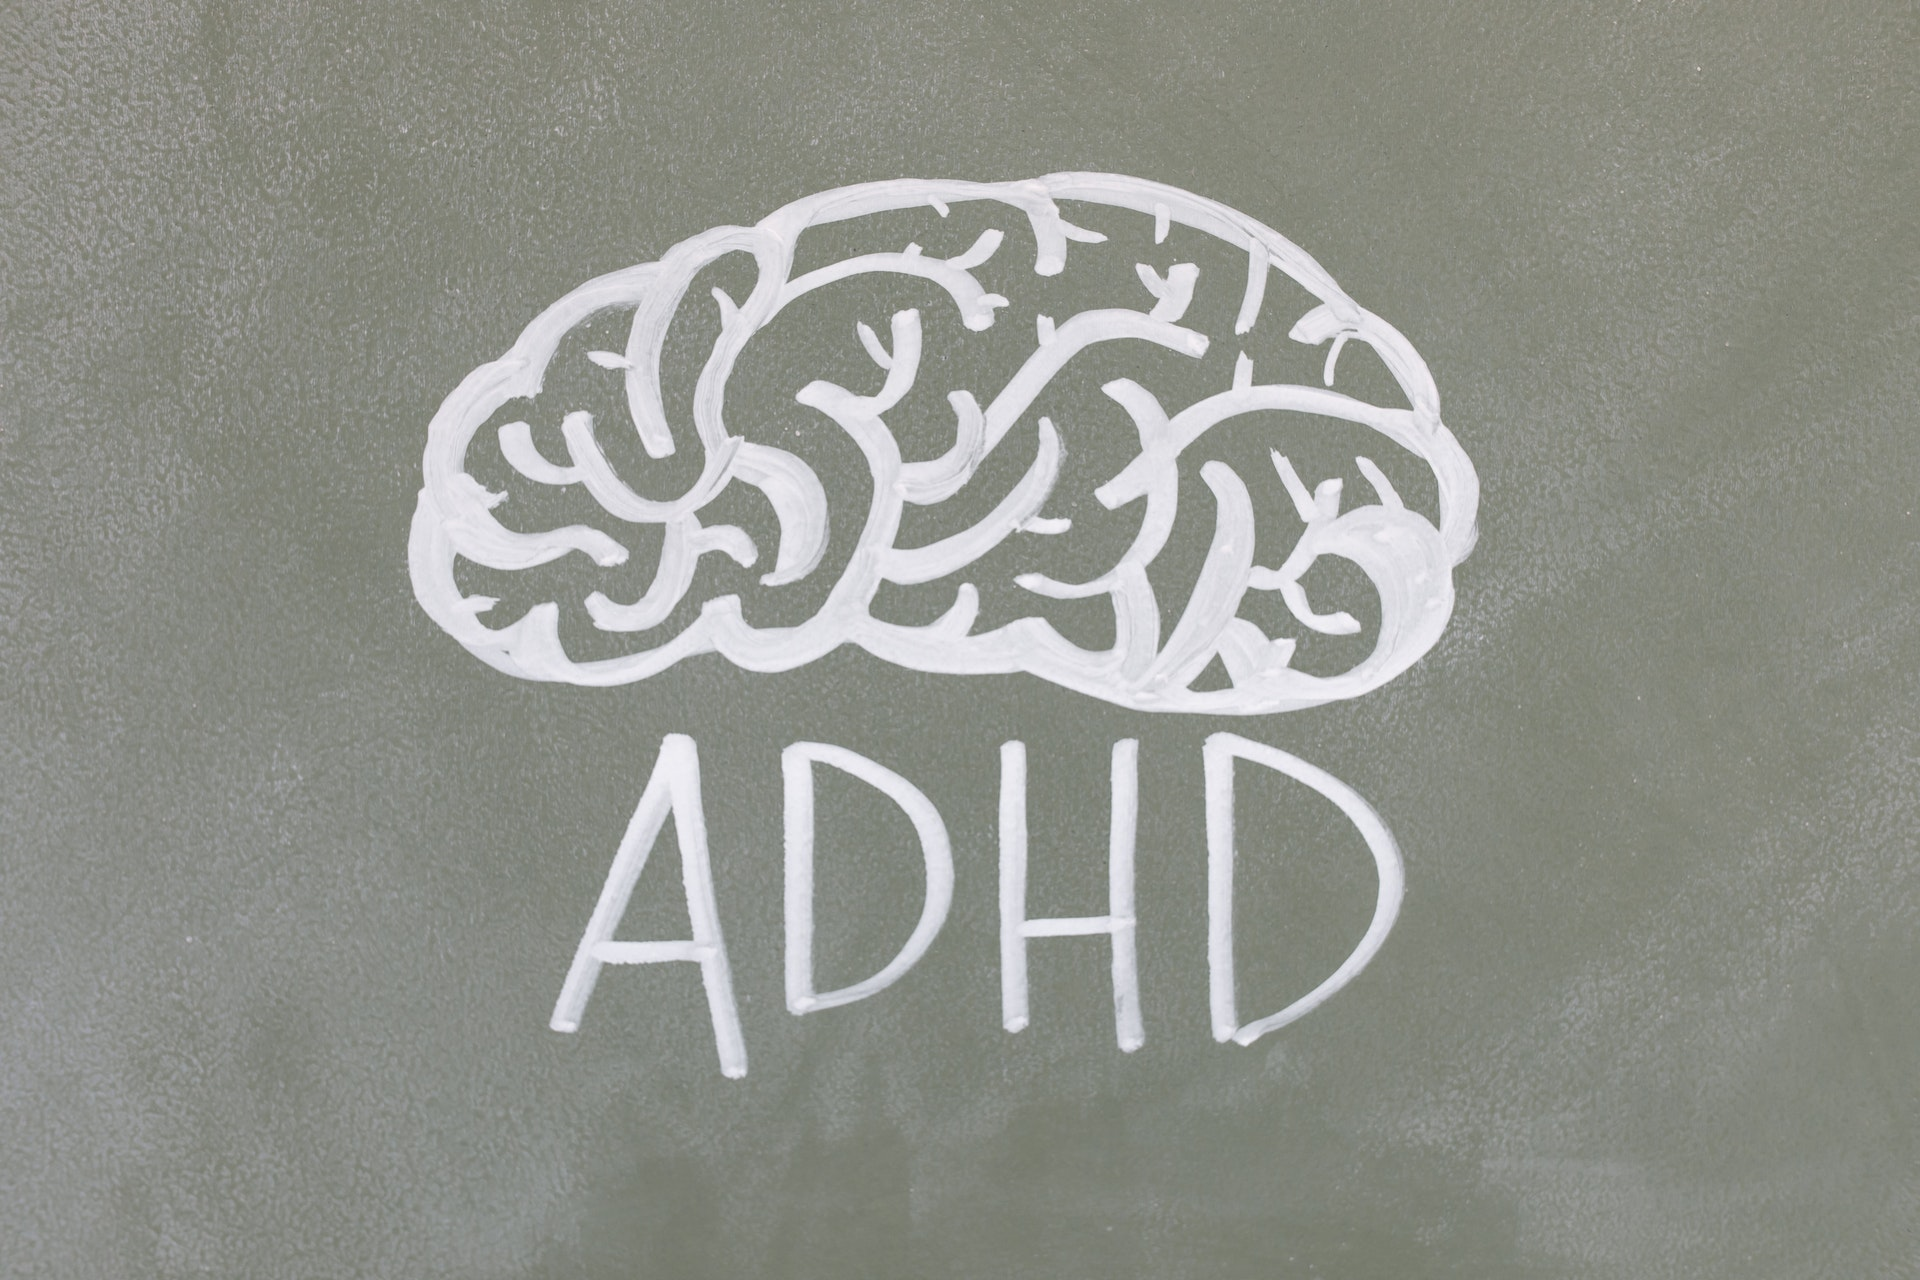 Utility of Neuropsychology in the Clinical Evaluation of ADHD